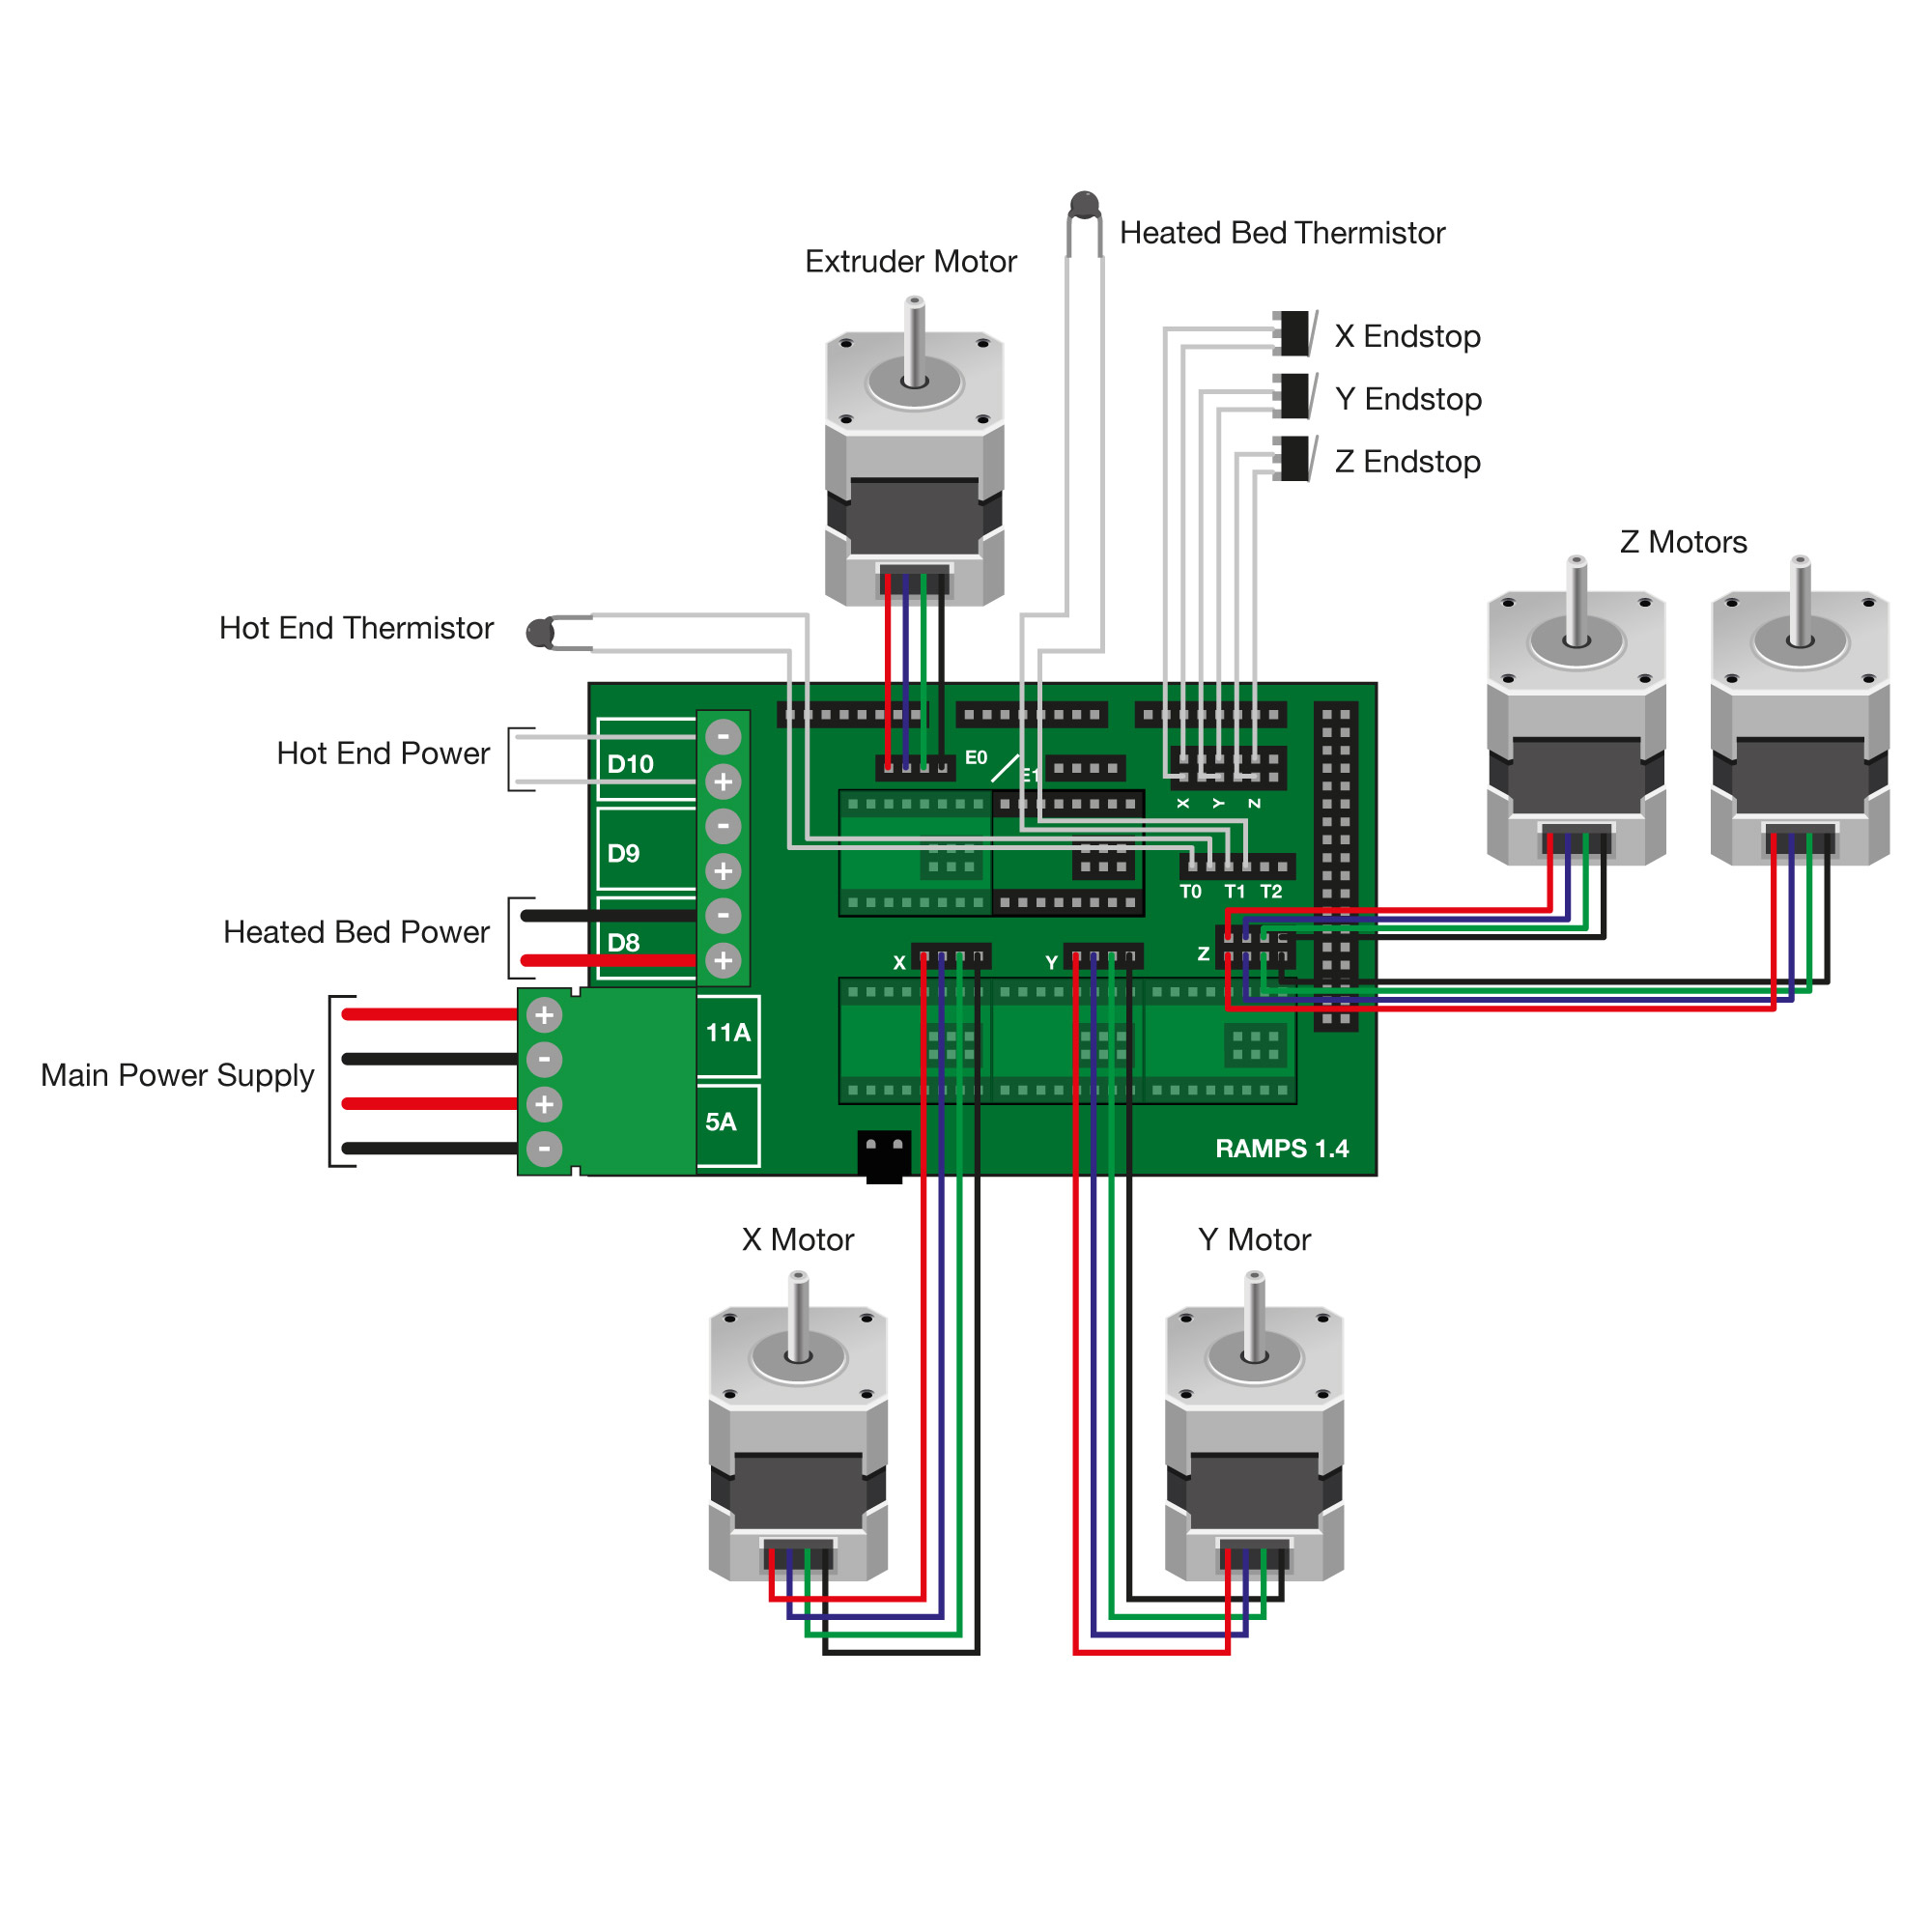 Wiring RAMPS Electronics for RepRap Prusa i3 3D Printer